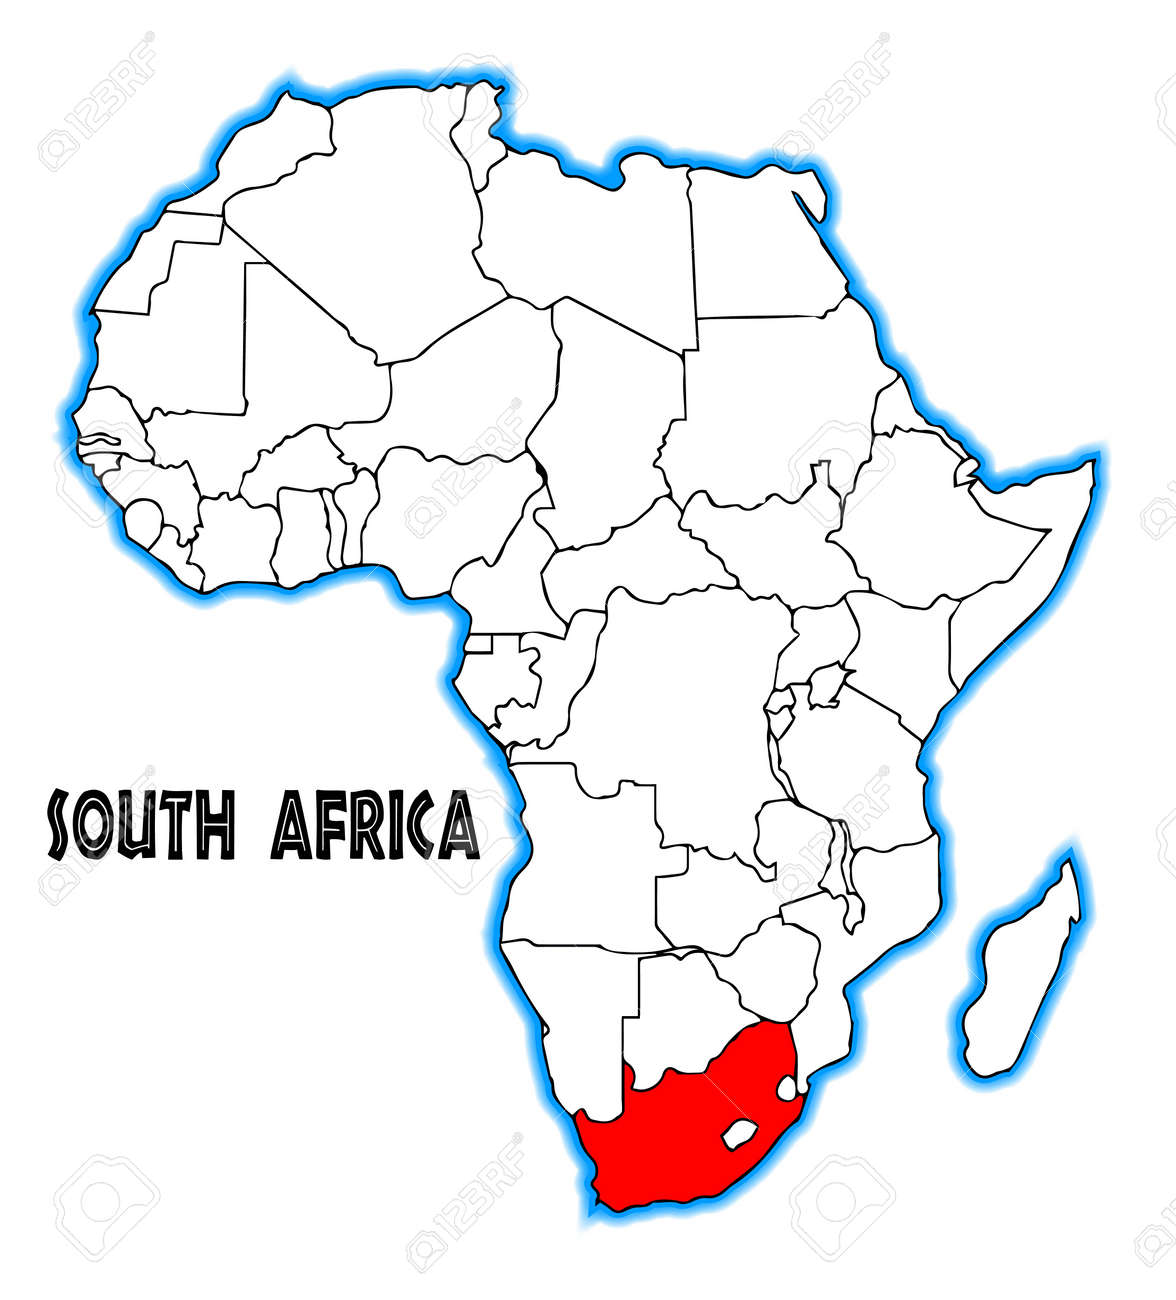 Map Of Africa Outline.South Africa Outline Inset Into A Map Of Africa Over A White